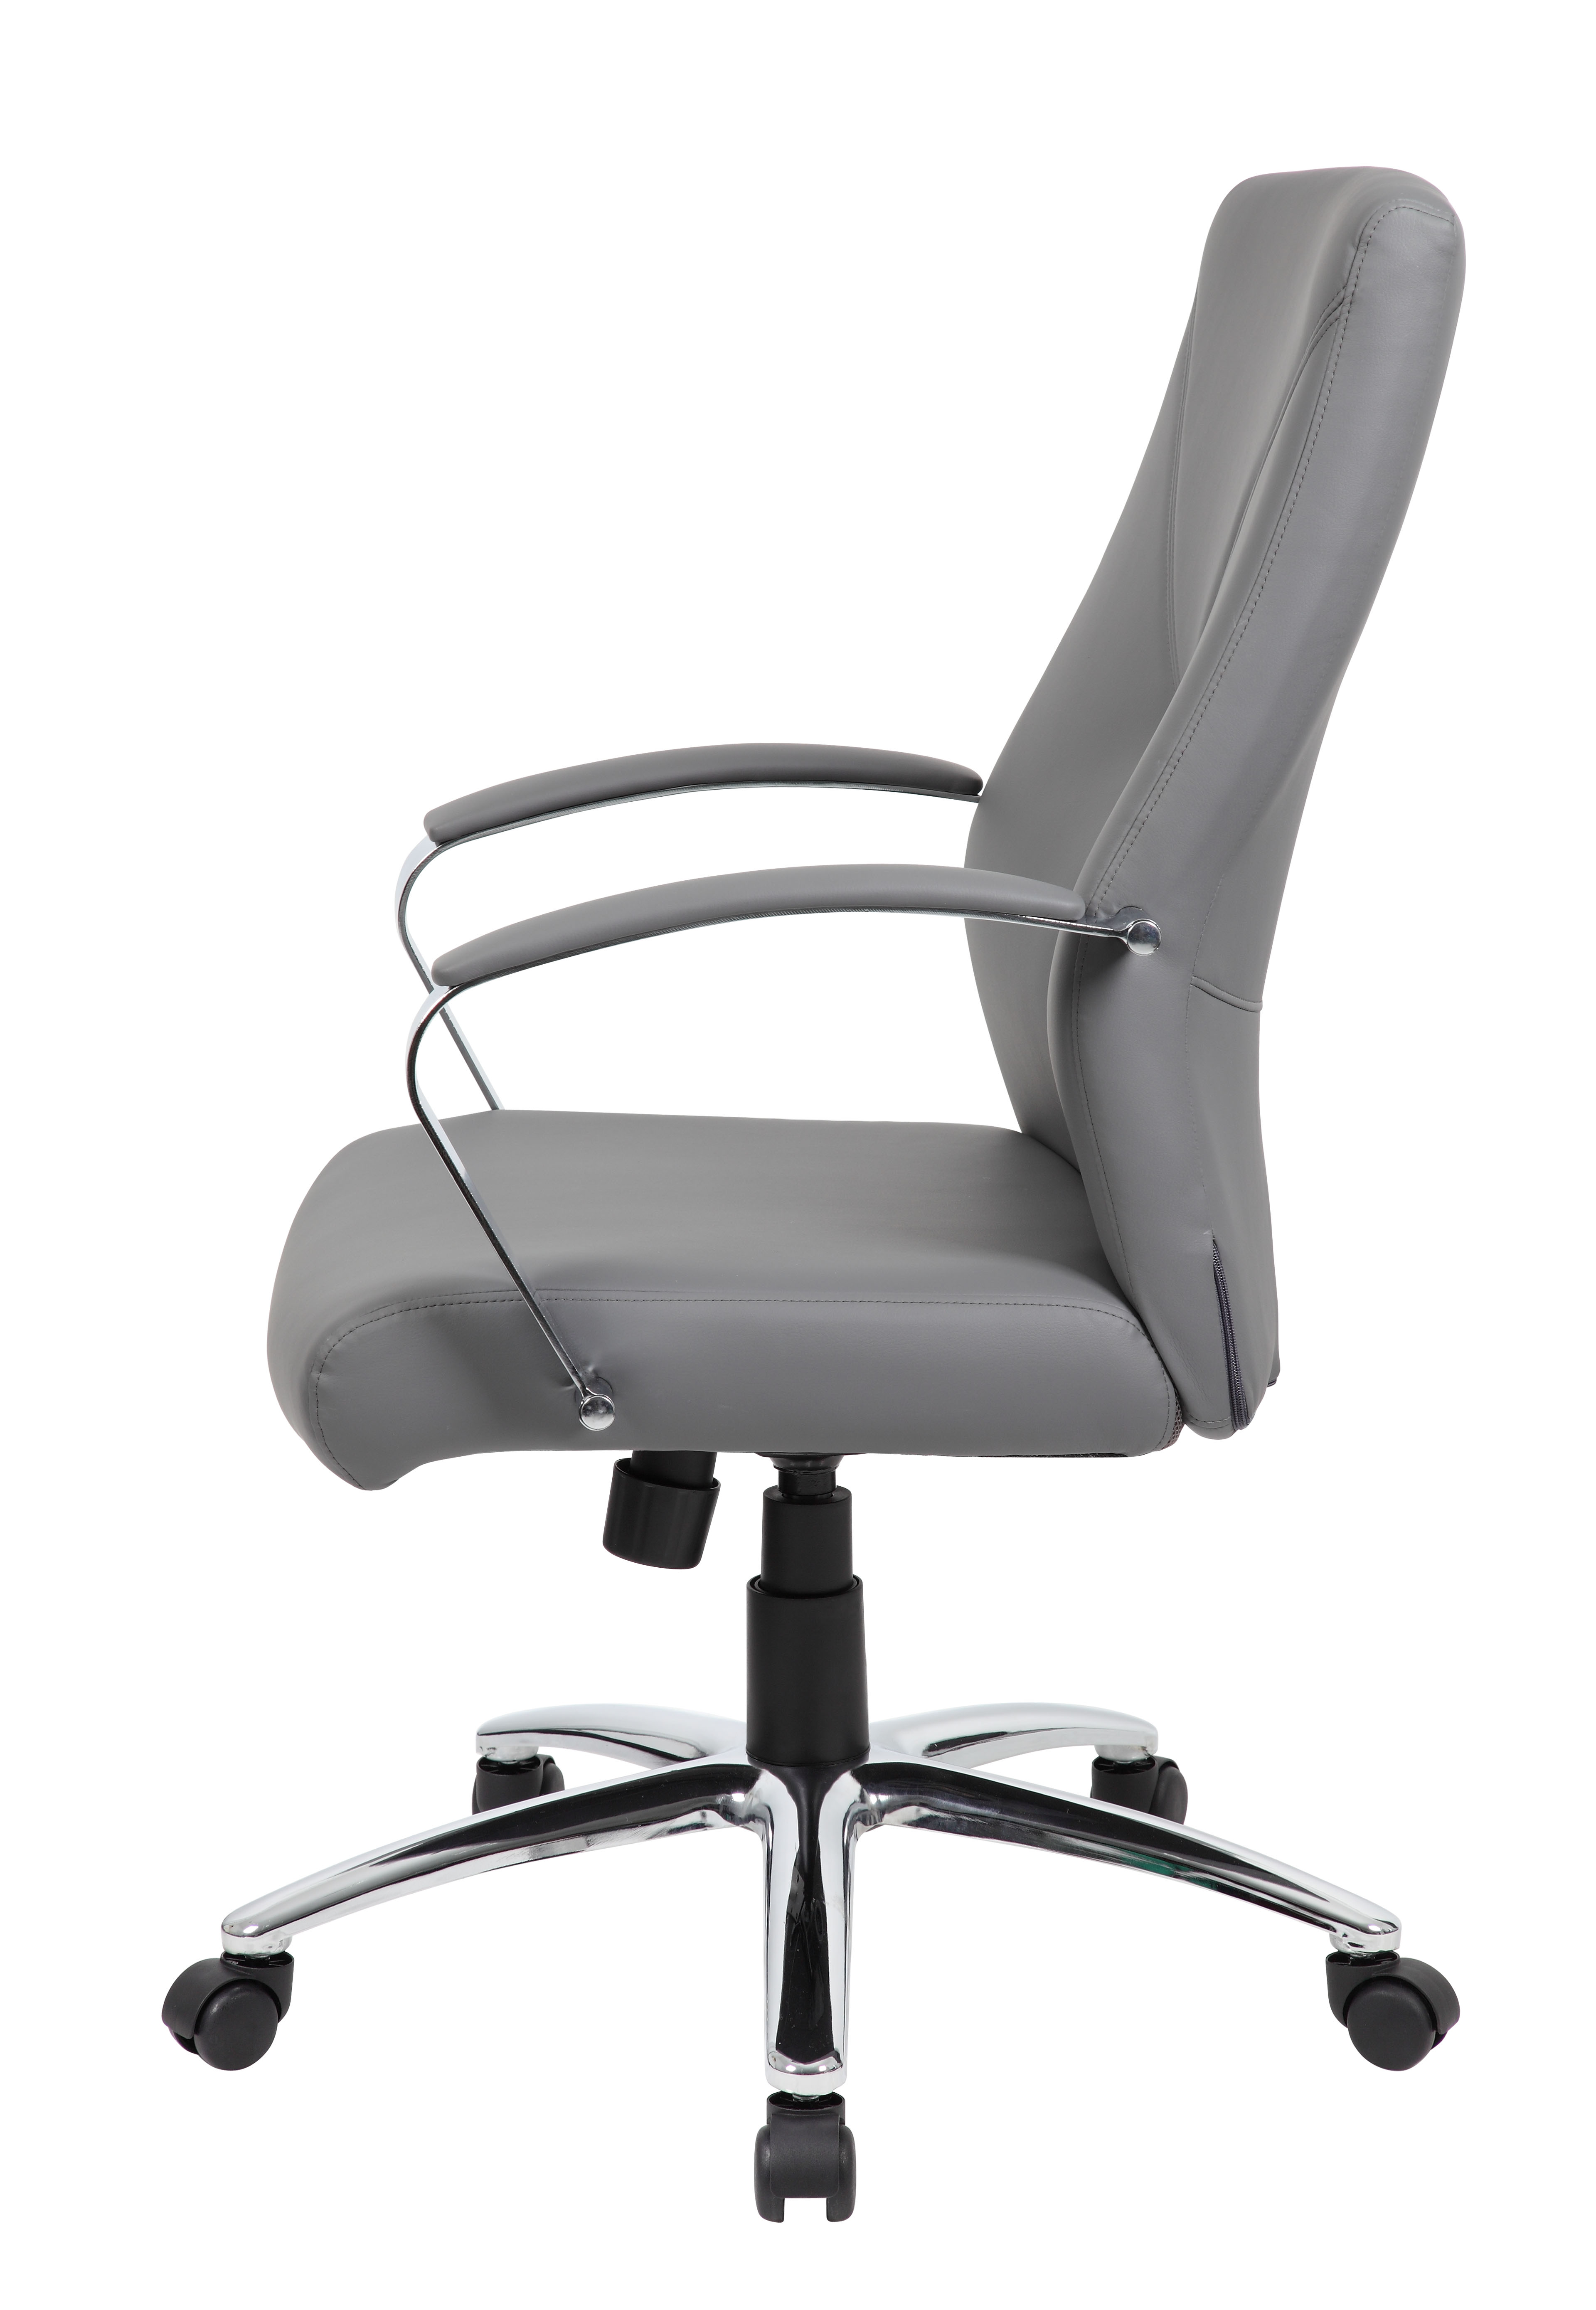 products chair grey ergonomic white timeoffice time office modern by